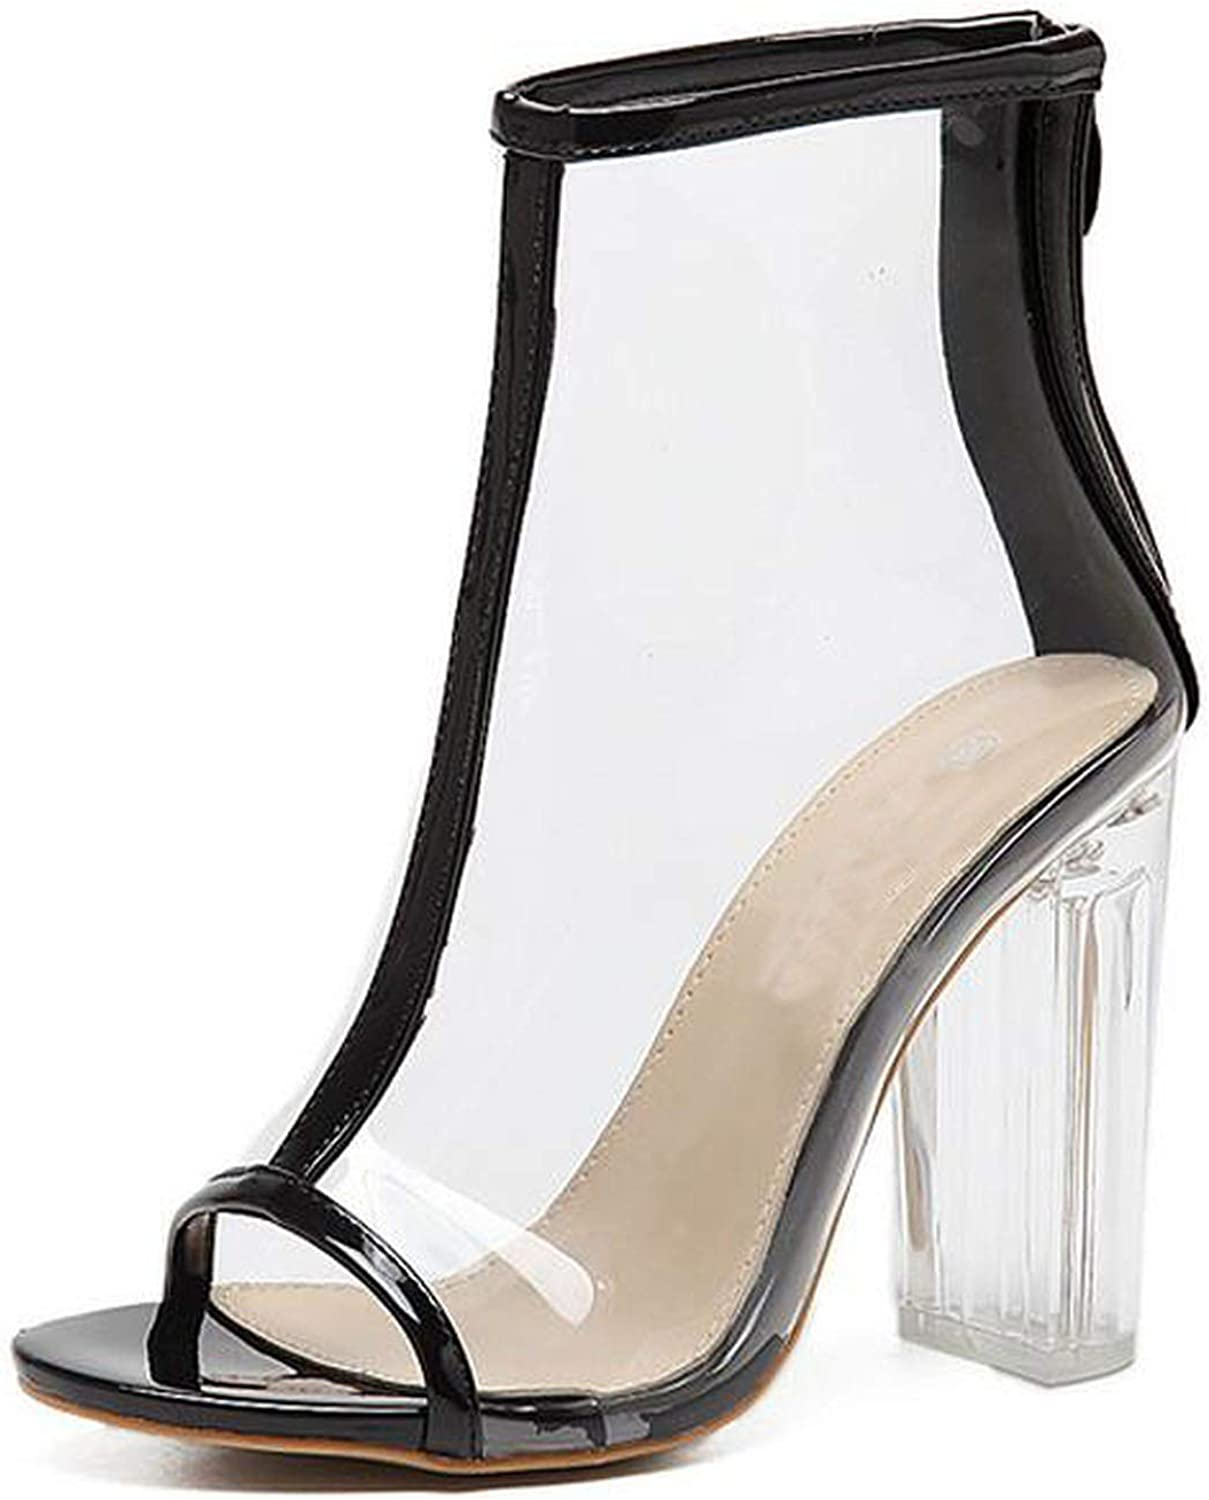 RAINIE002 Sexy PVC Transparent Boots Sandals Peep Toe Kim Kardashian shoes Clear Chunky Heels Sandals womenwomen Boots 11Cm